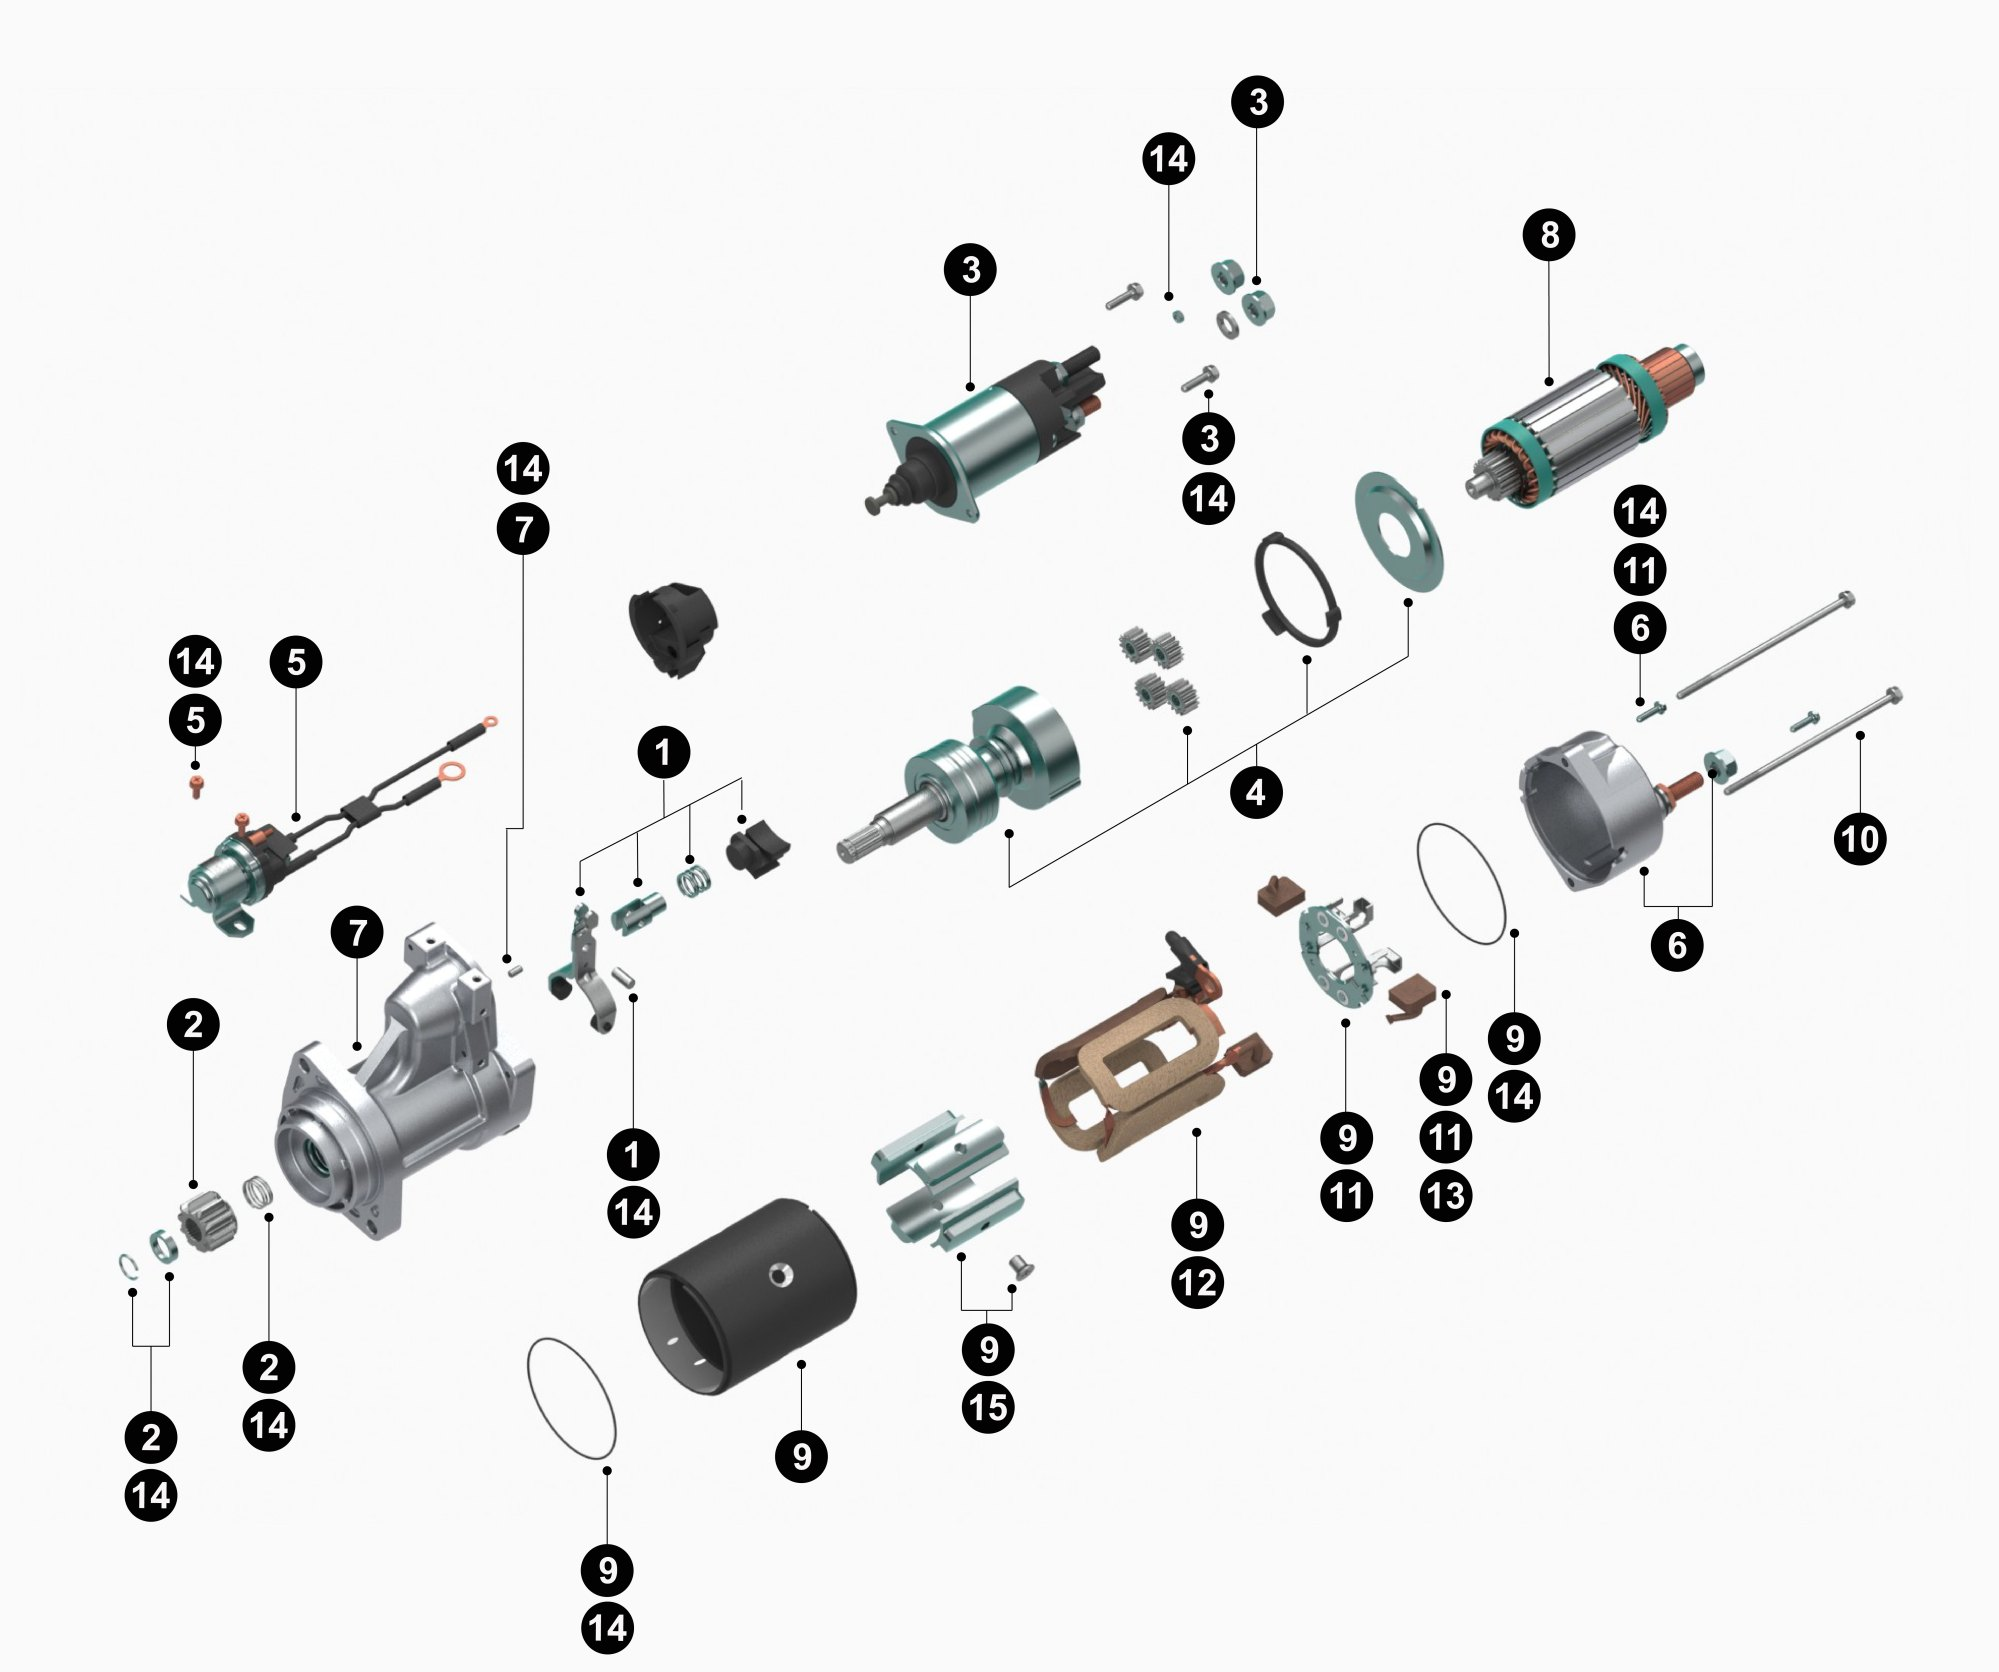 hight resolution of delco remy 50dn alternator wiring diagram best wiring library19026027 38mt new starter product details delco remy19026027